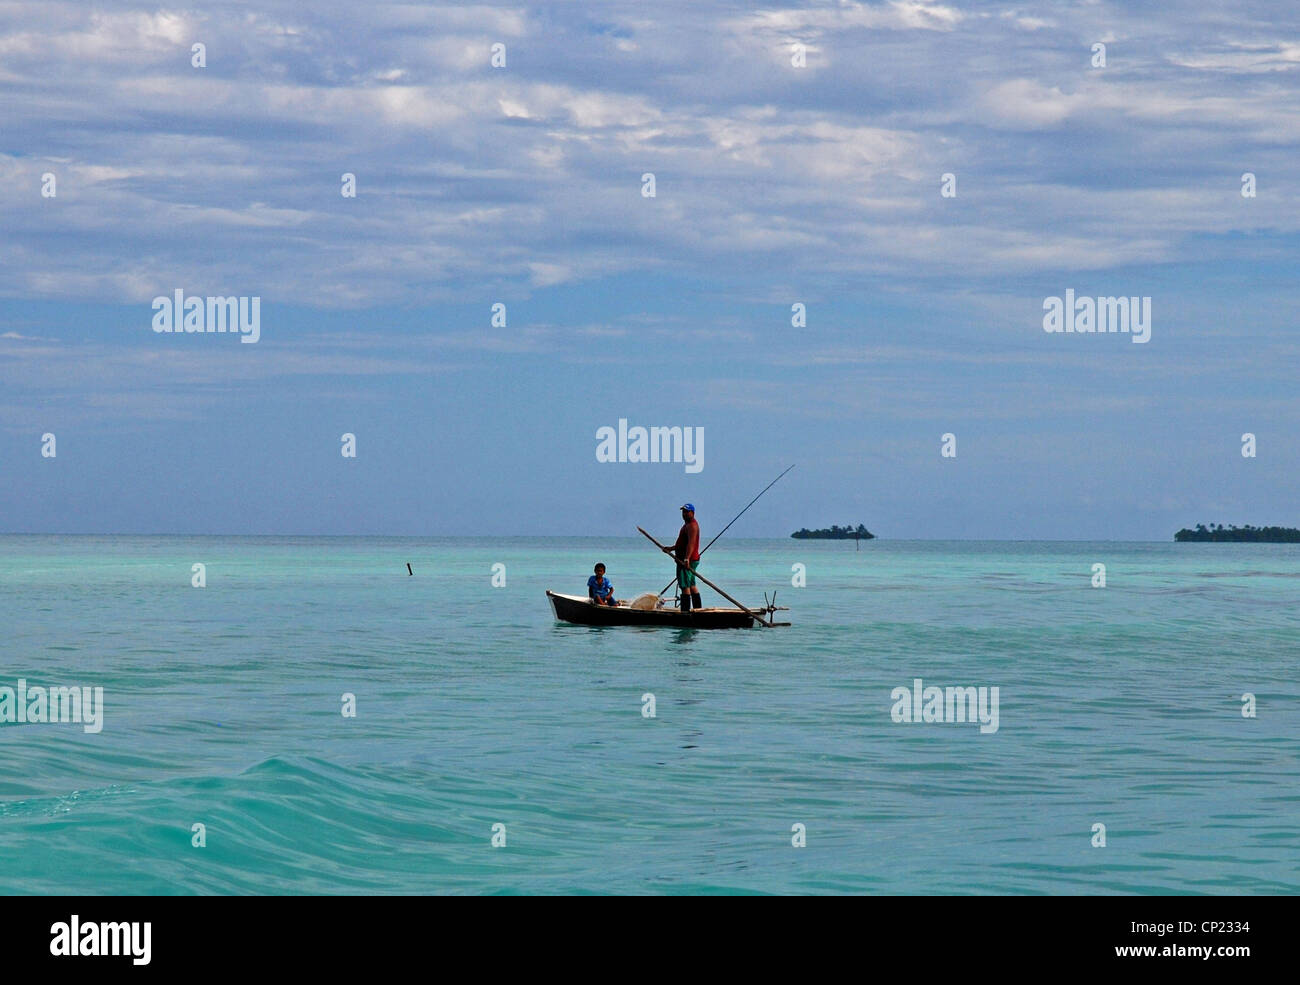 Man and son fishing from a small wooden canoe in a shallow lagoon, Aitutaki, Cook Islands,South Pacific. - Stock Image